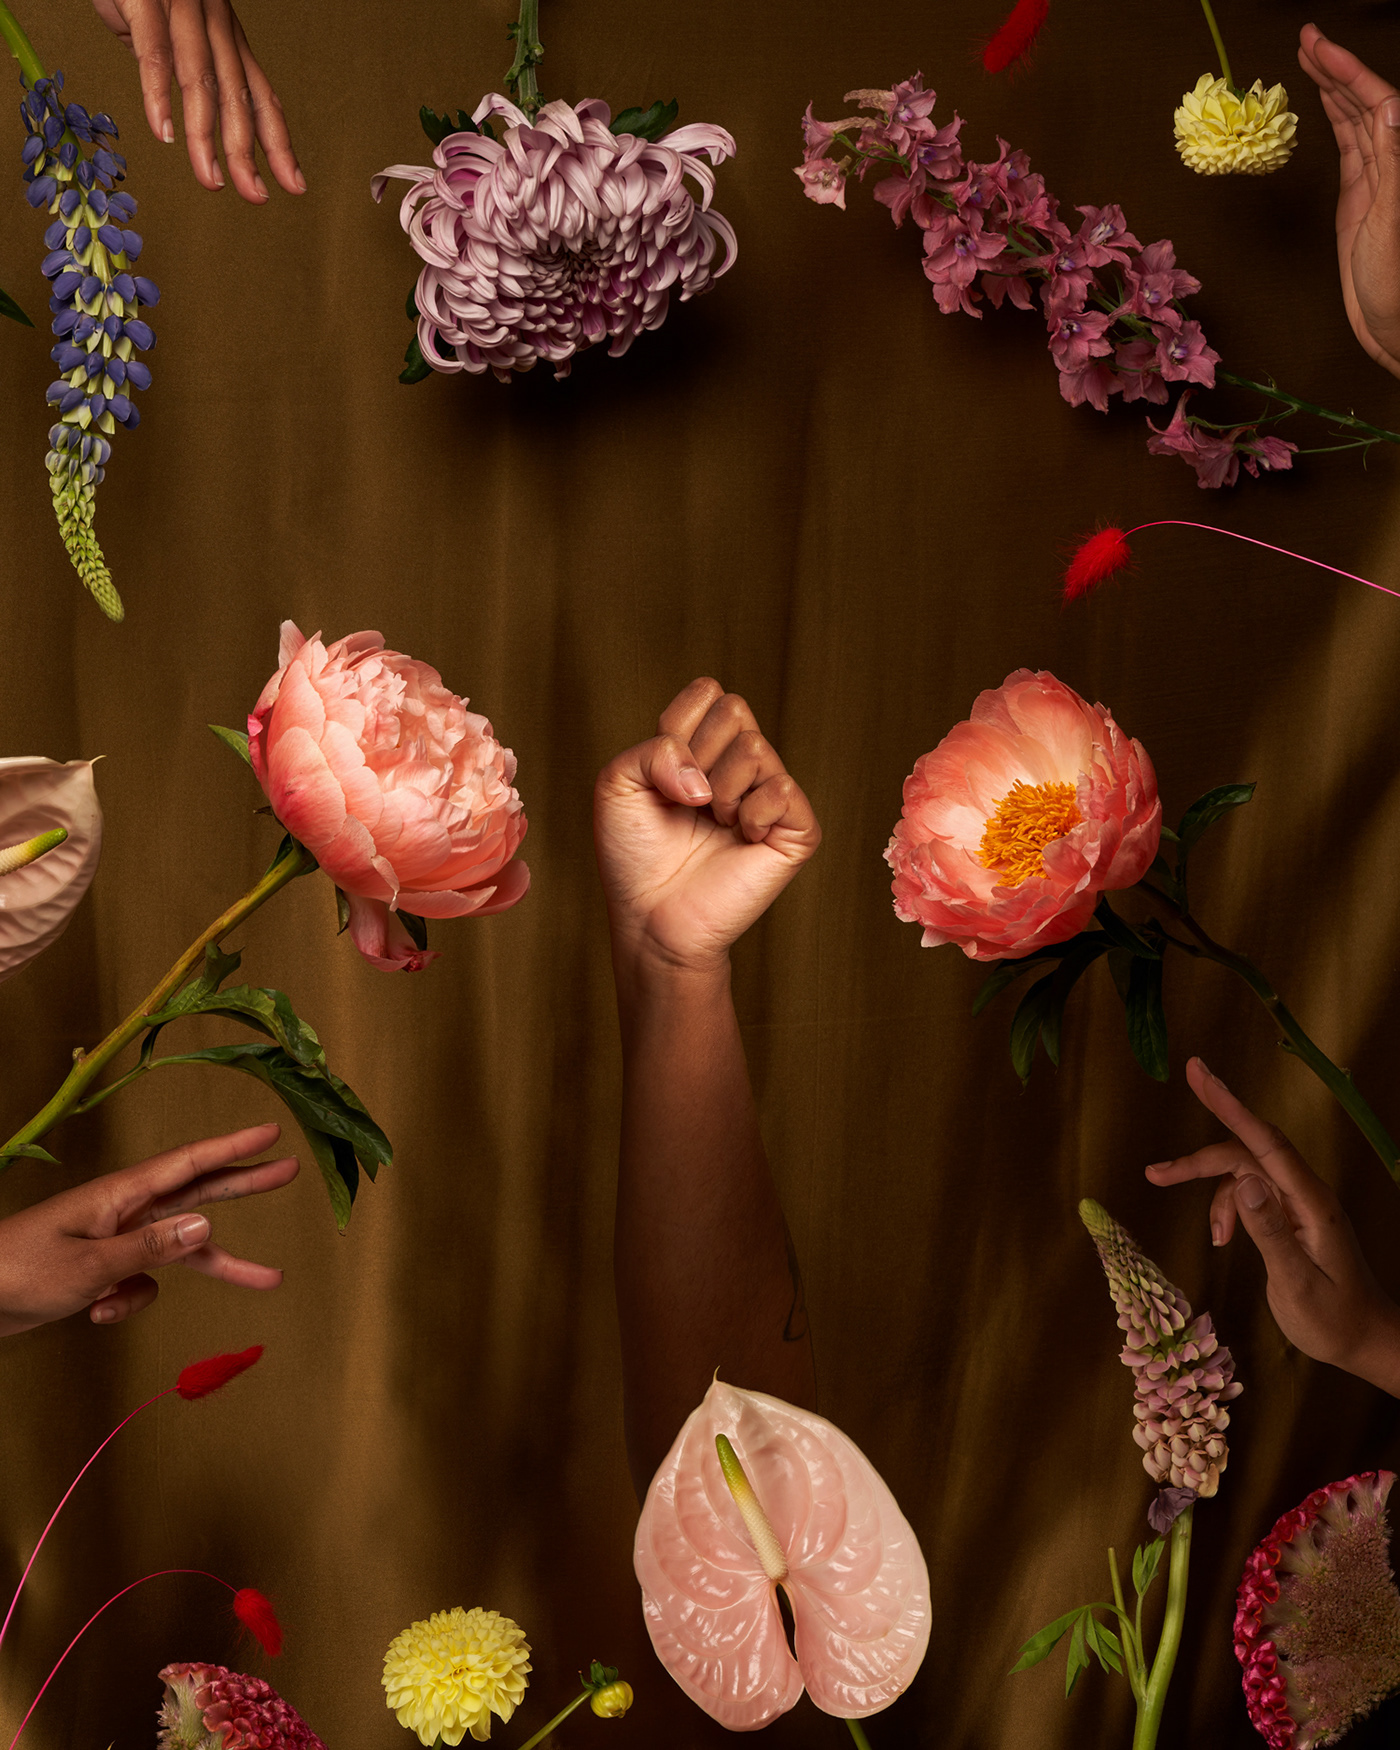 Black Lives Matter BLM braids conceptual Flowers Food  Prop Styling Social Justice Adobe Creative Residency heritage